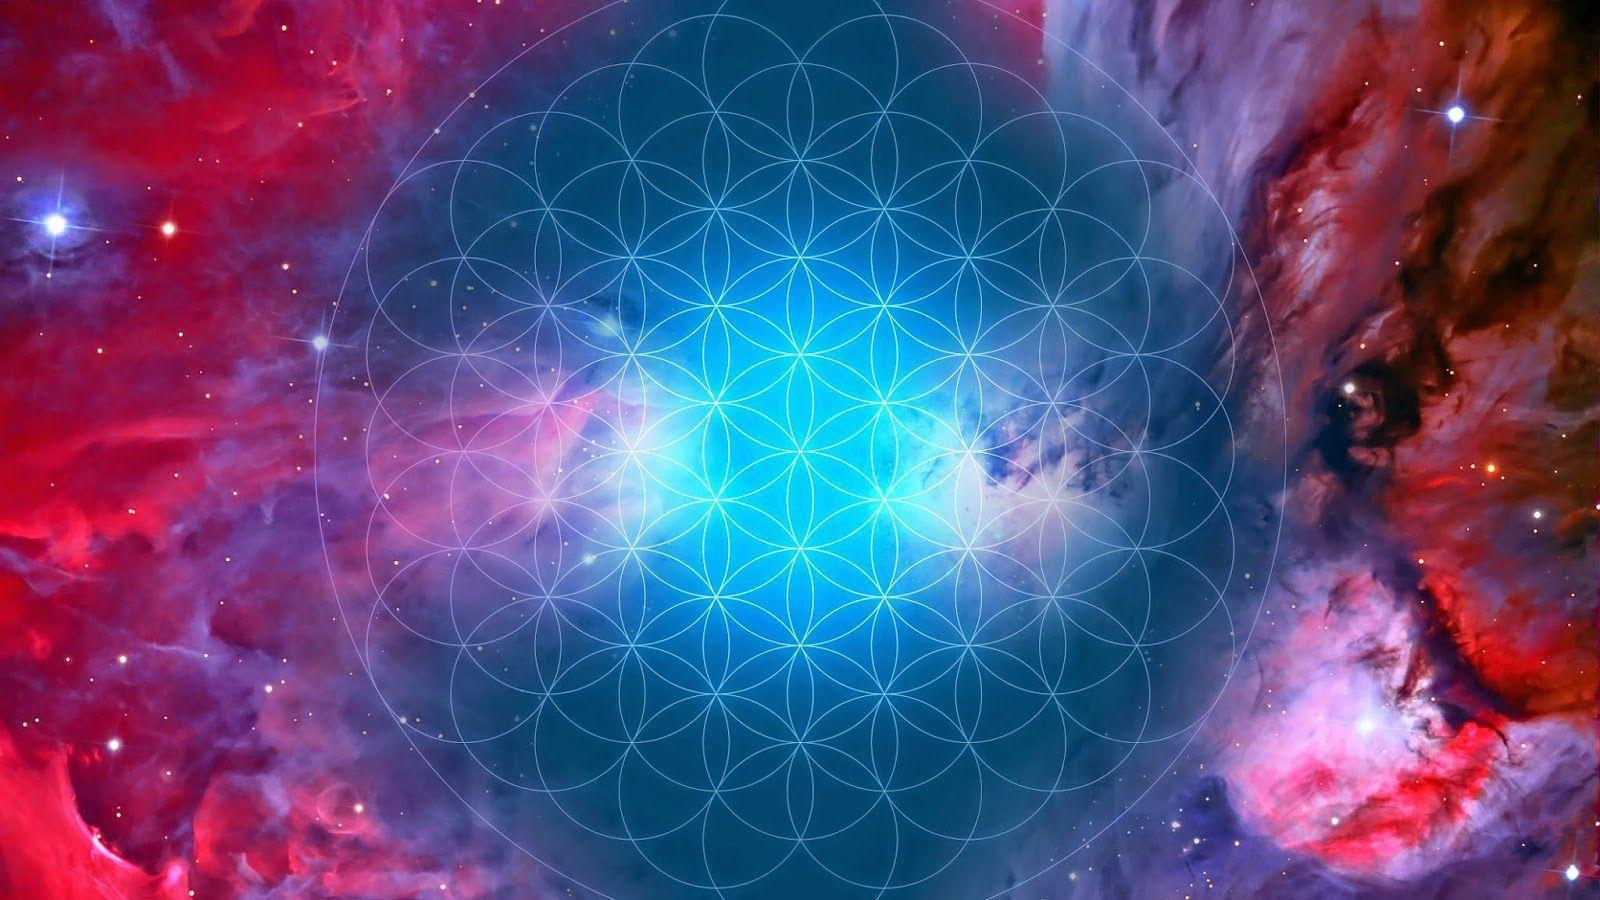 Flower Of Life Wallpapers Wallpaper Cave